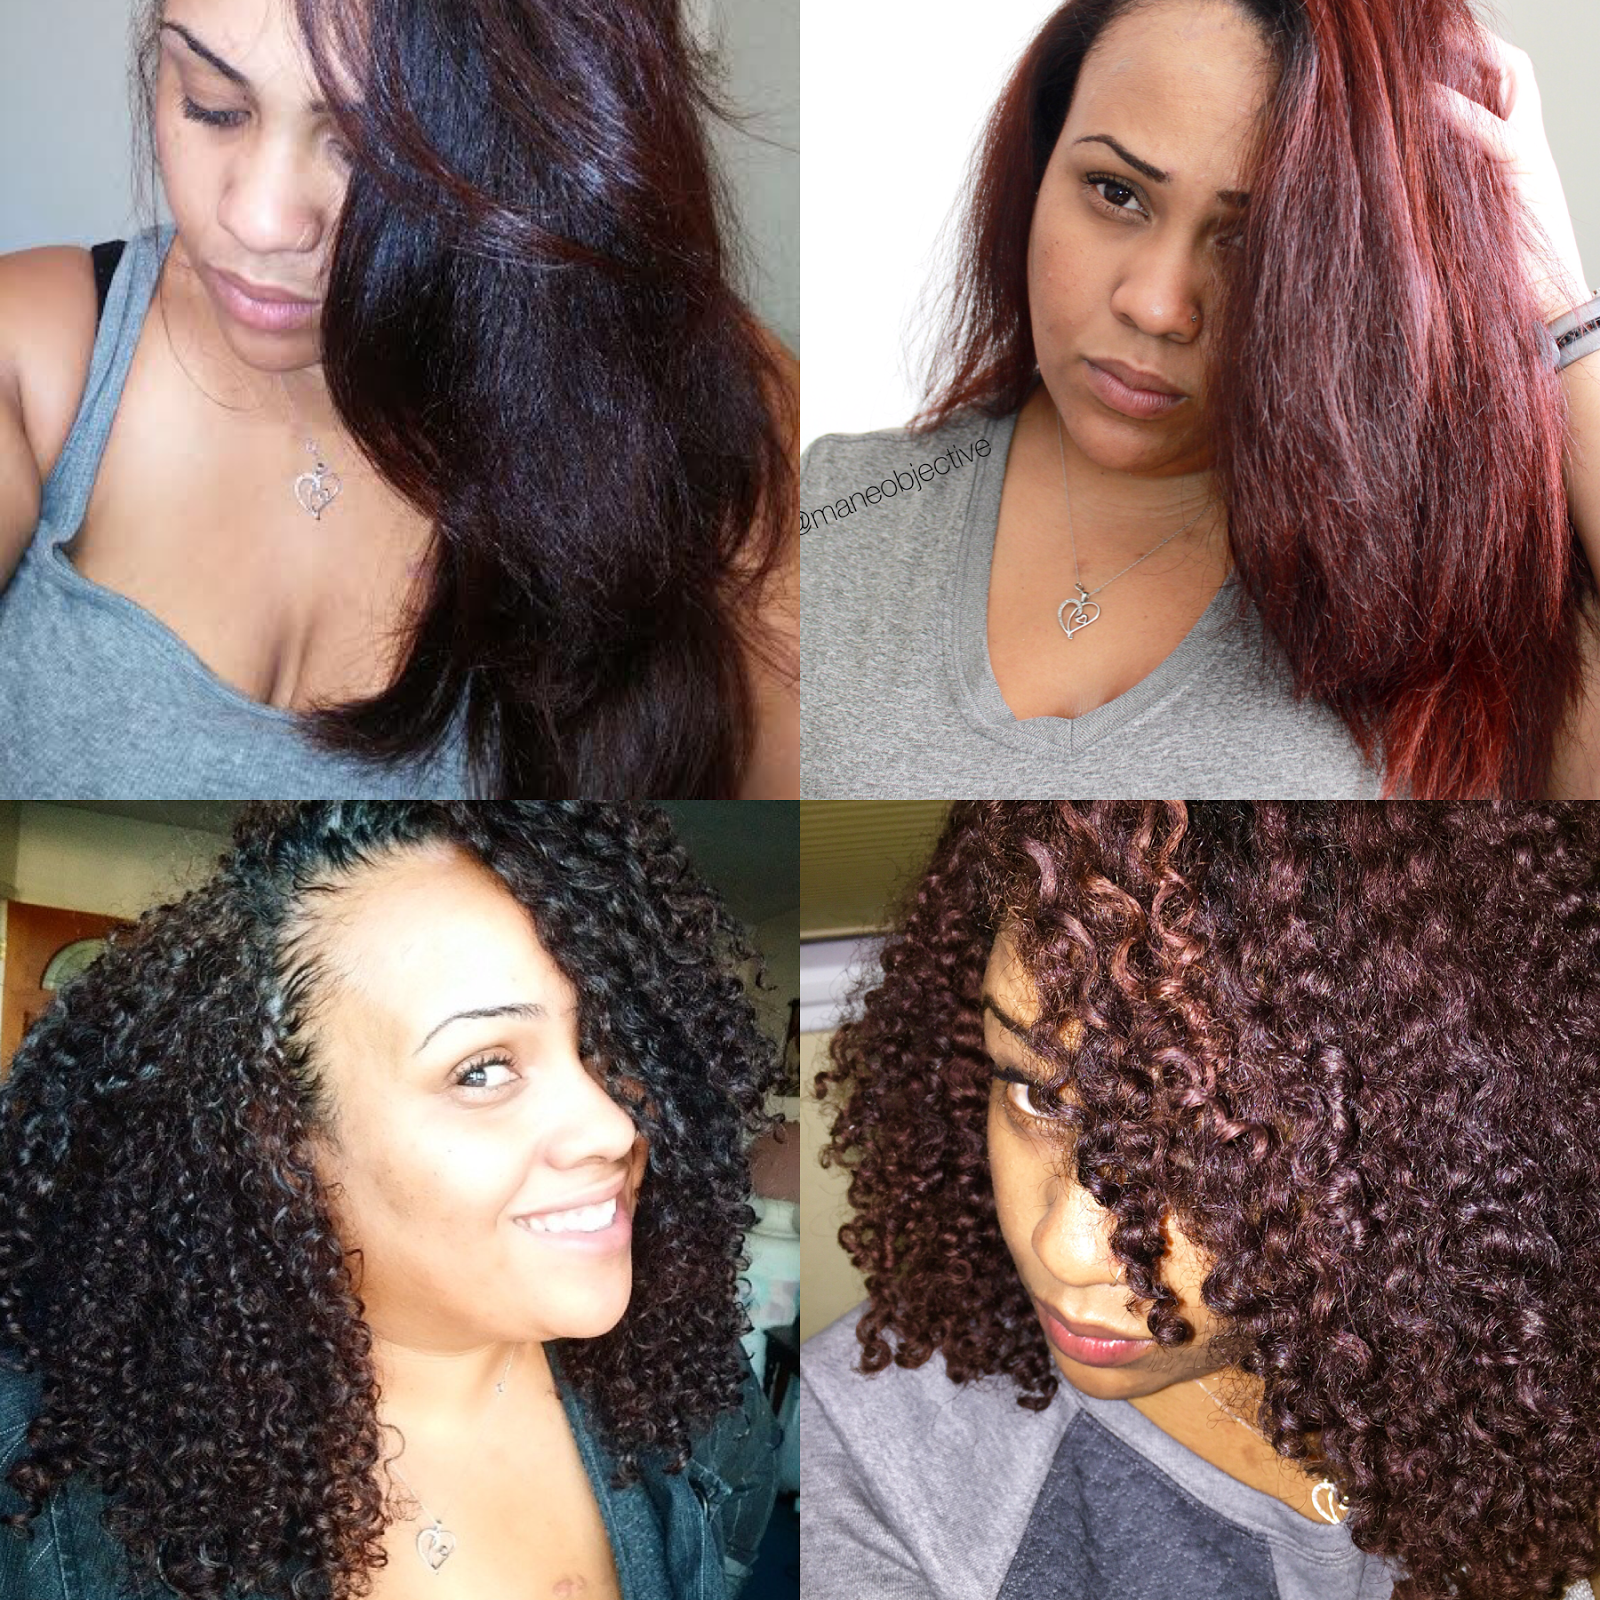 Thinking About Coloring Your Natural Hair? Weigh the Pros and Cons First.